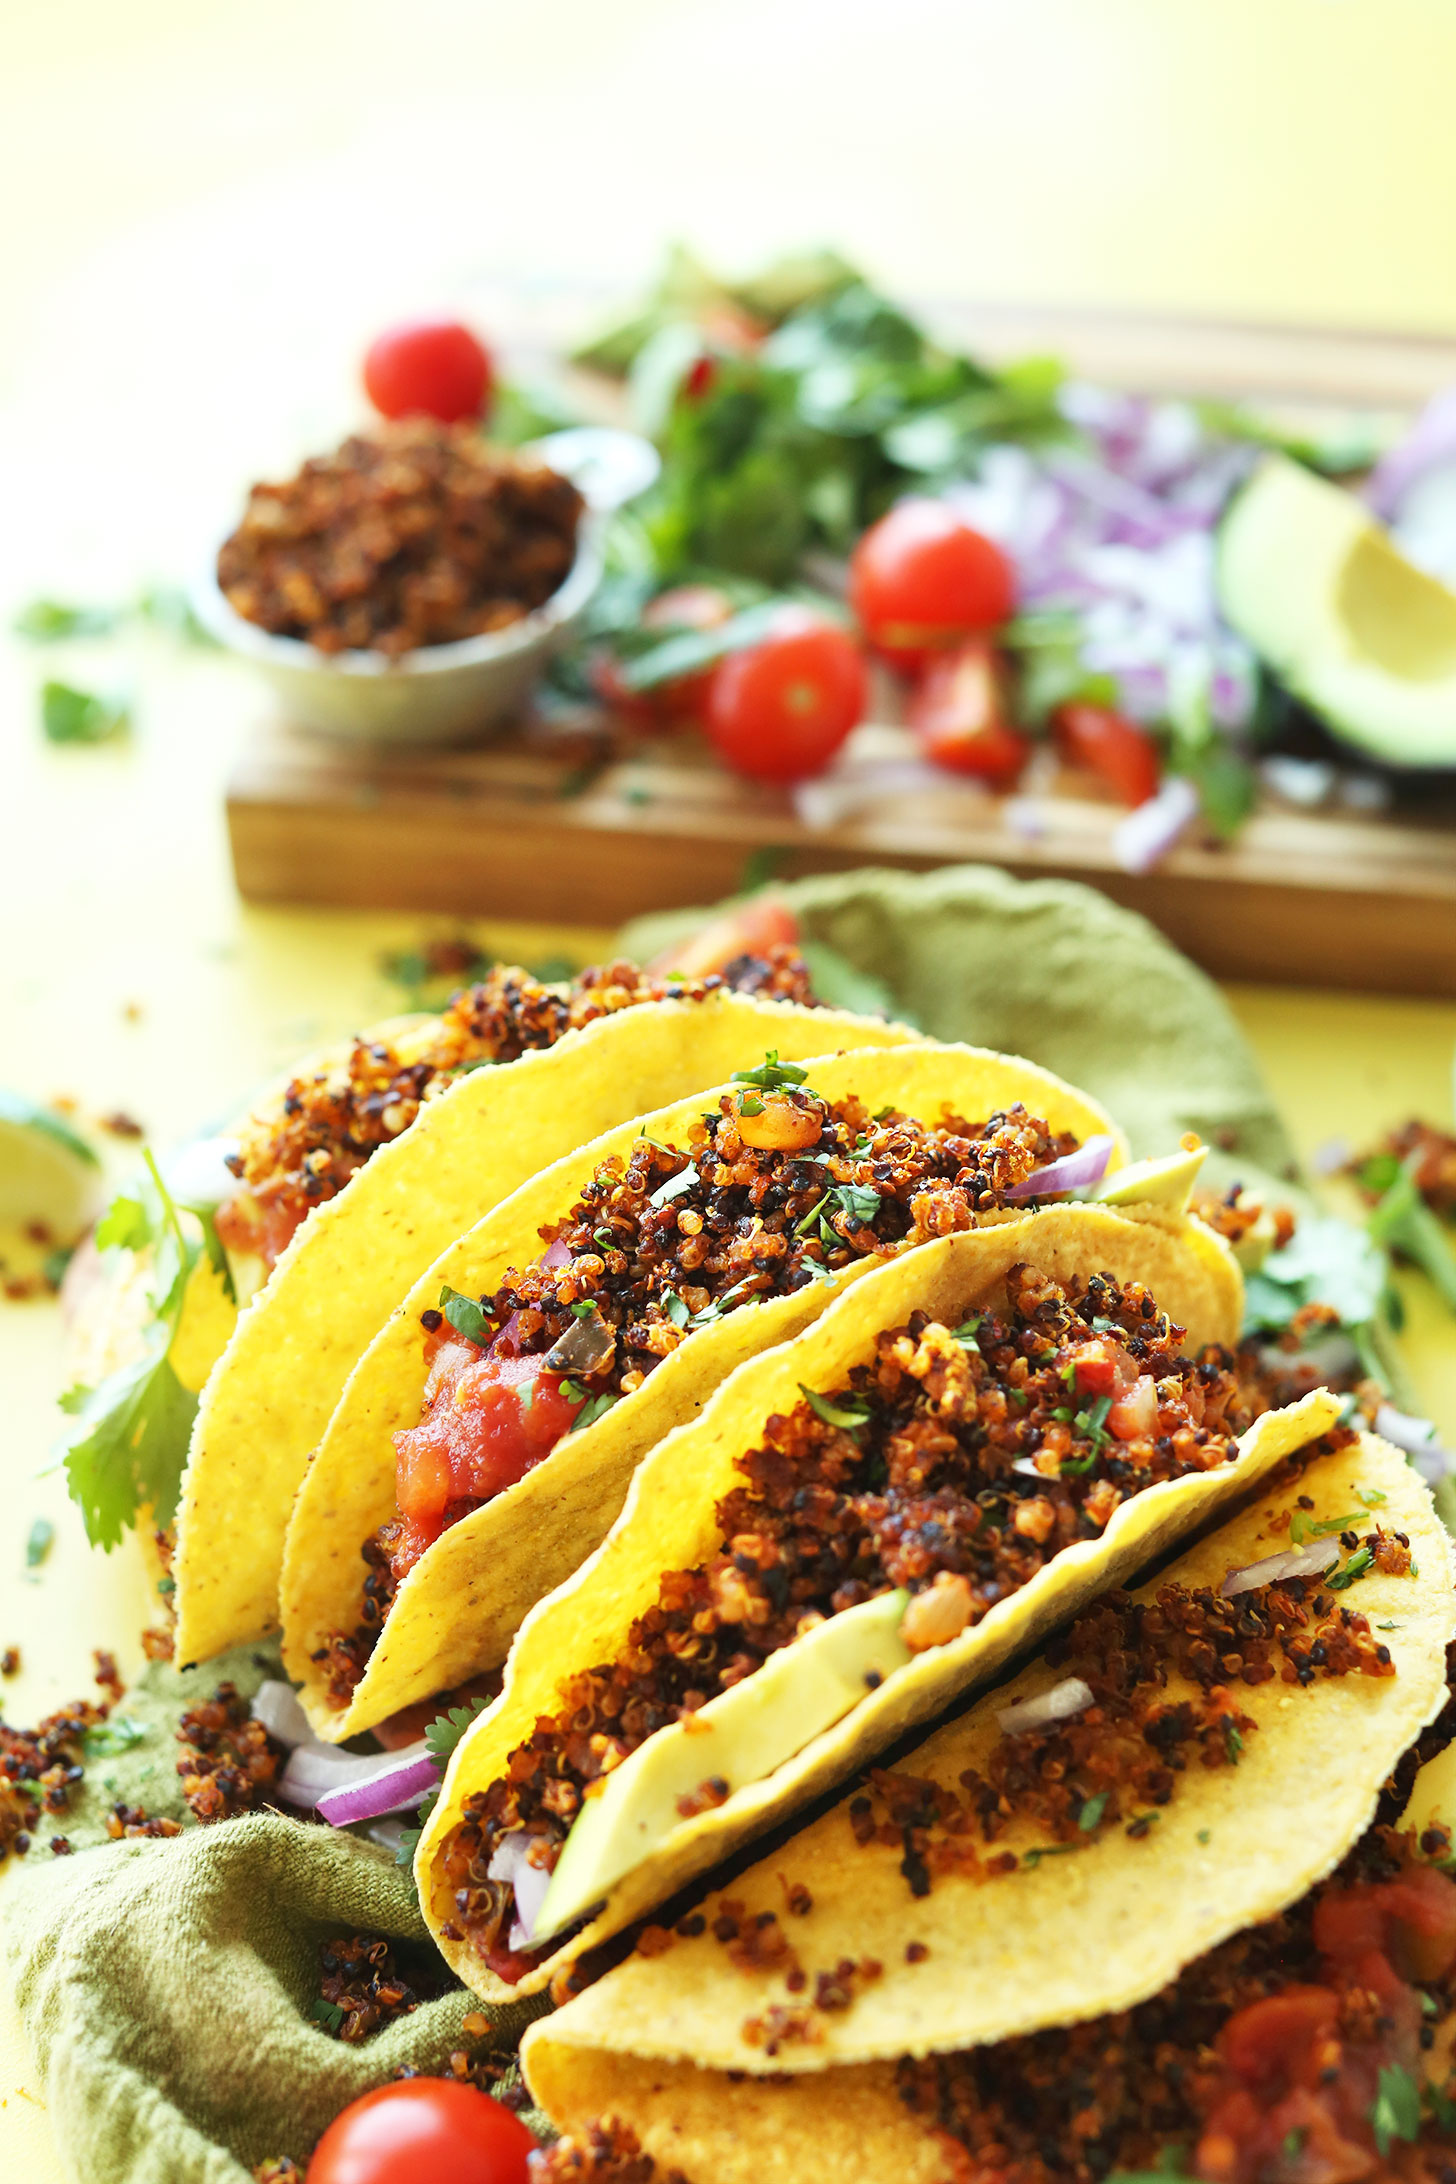 Gluten-free corn tortillas stuffed with our Vegan Quinoa Taco Meat recipe